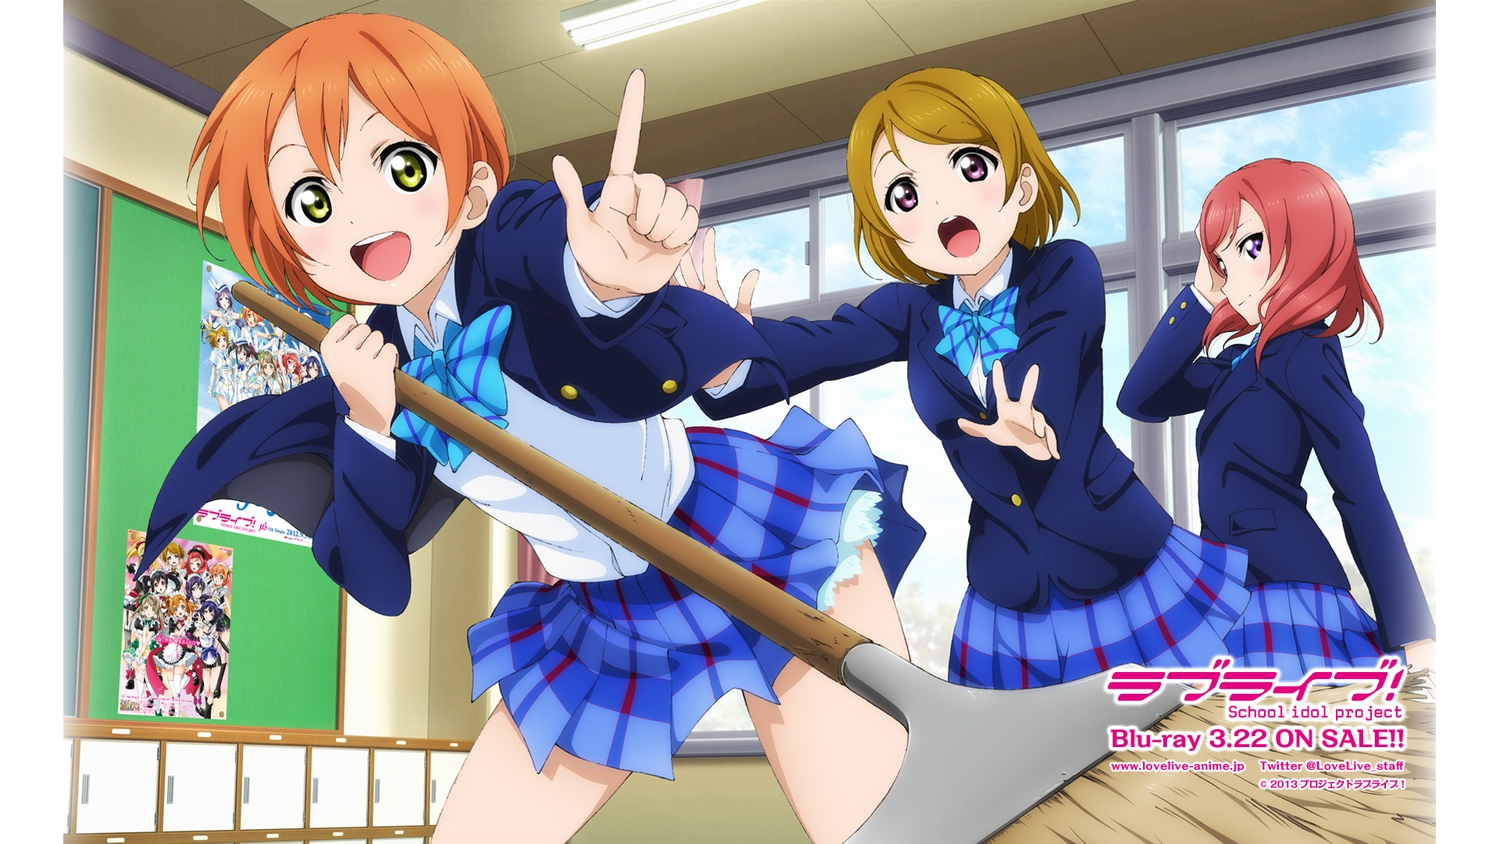 hoshizora_rin jpeg_artifacts koizumi_hanayo love_live!_school_idol_project nishikino_maki school_uniform